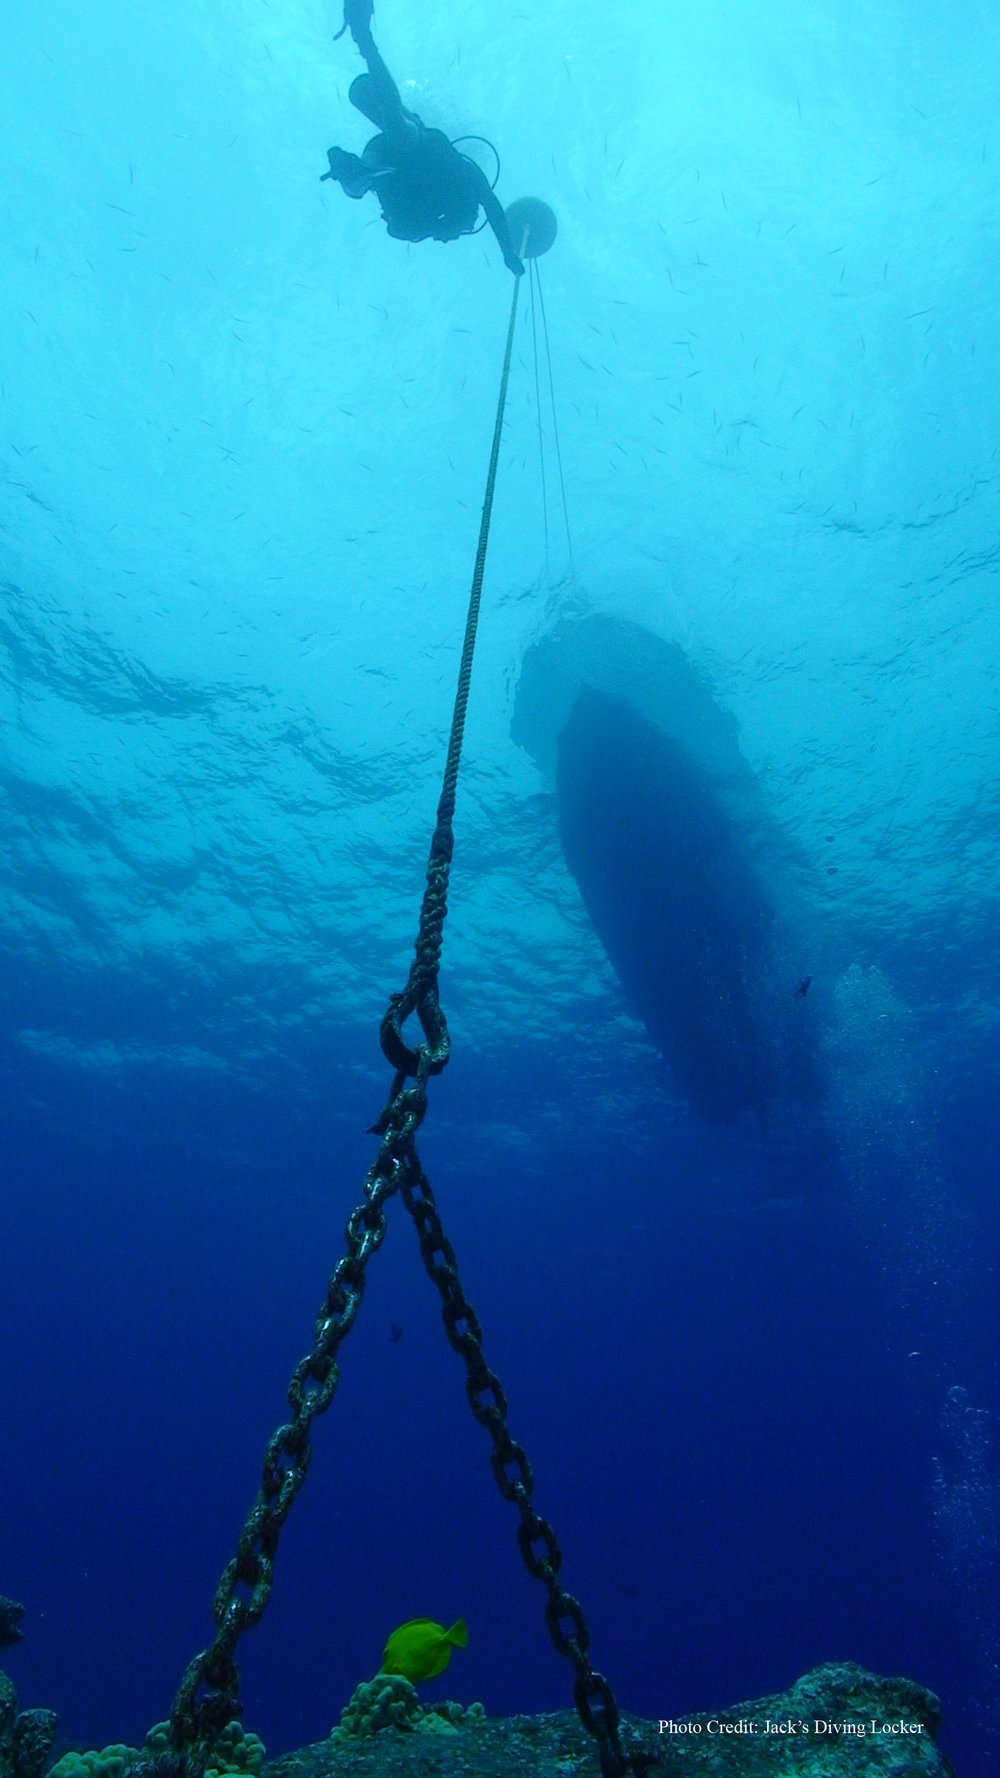 Diver  Mooring7 - With Credit.jpg